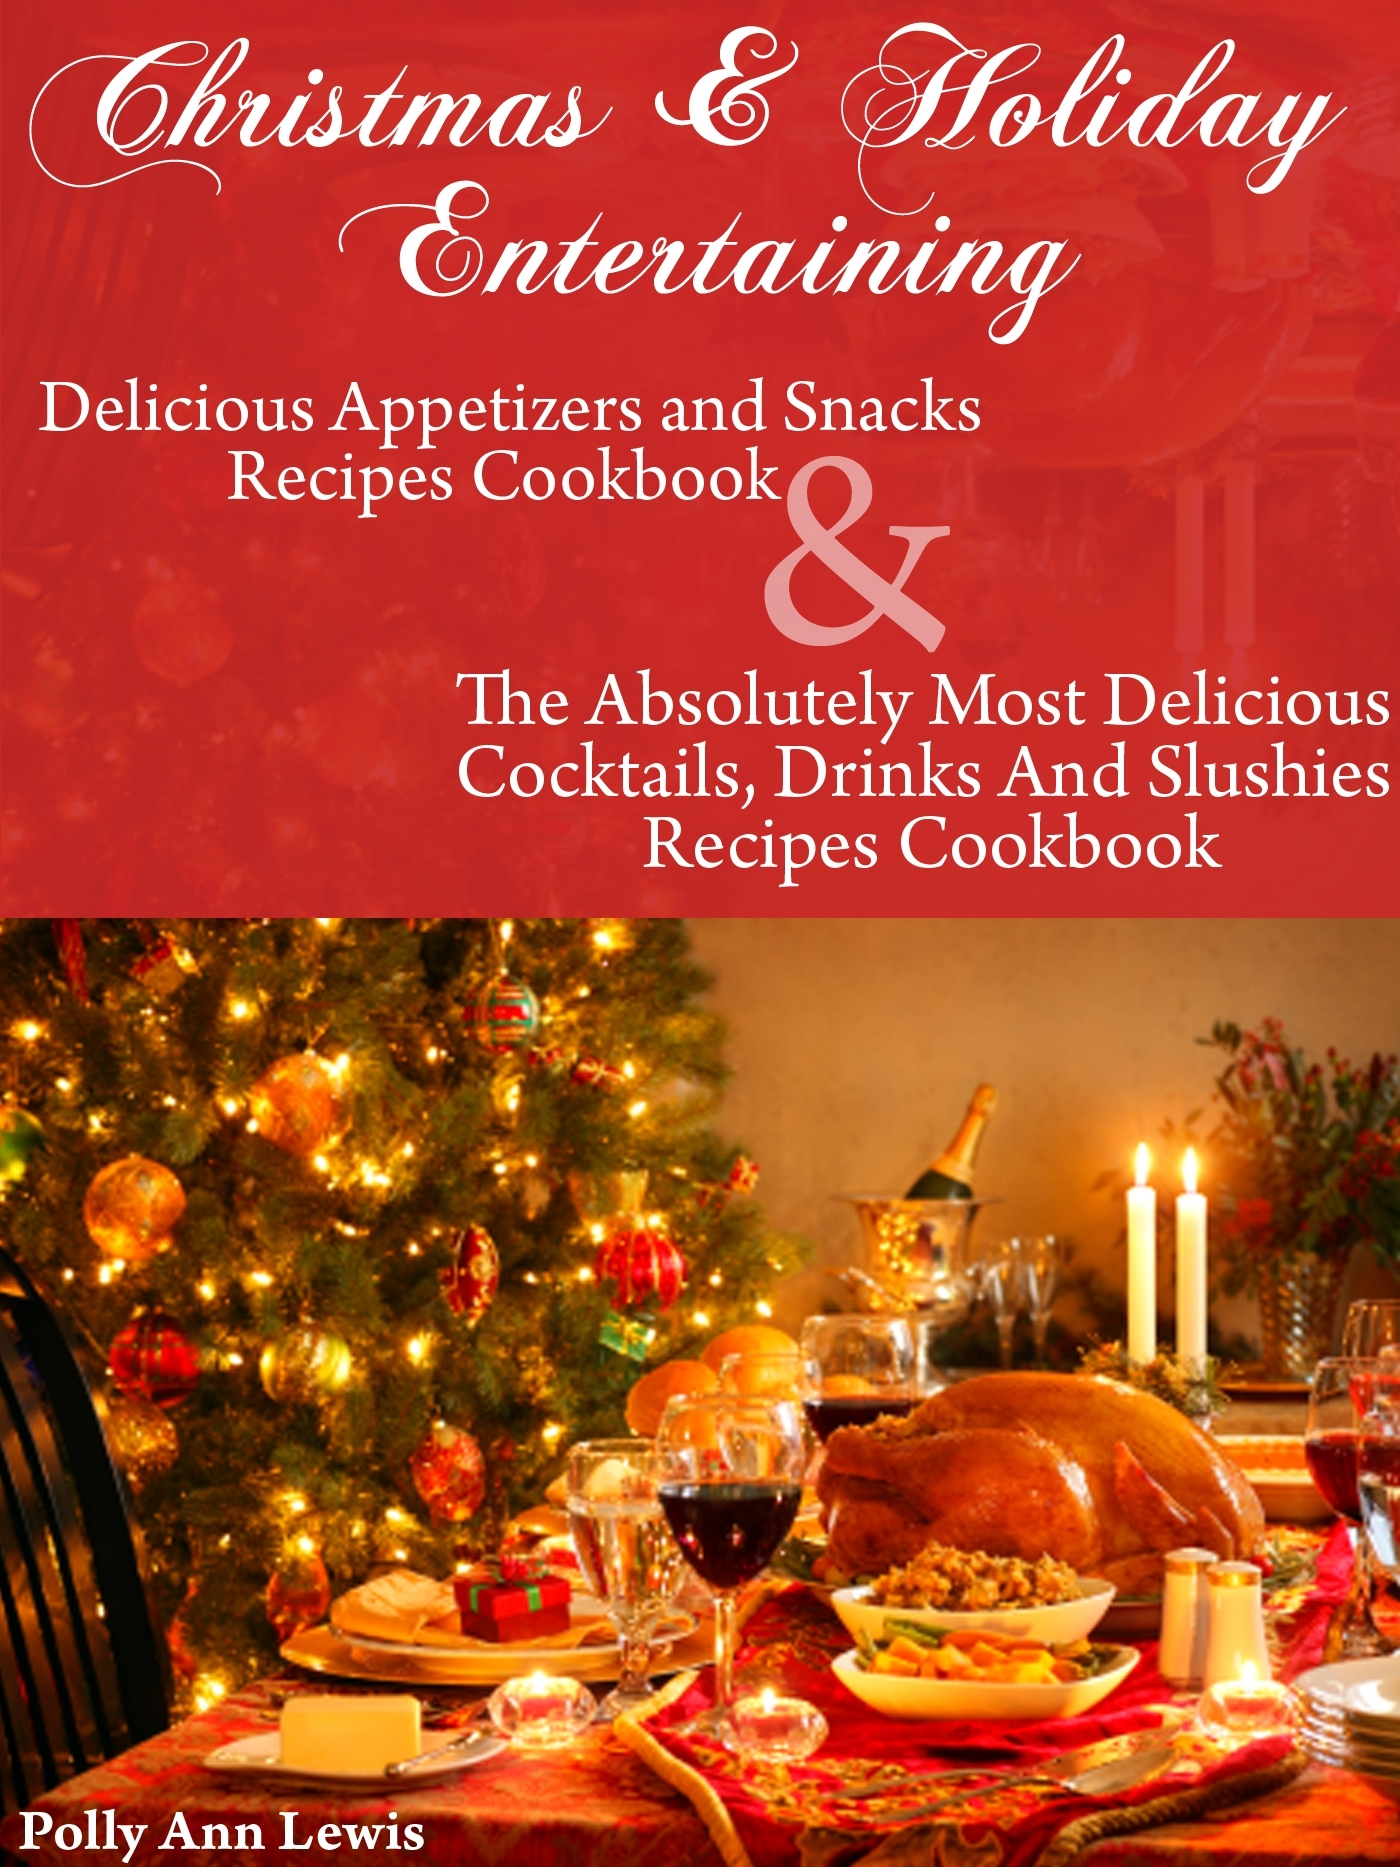 Christmas & Holiday Entertaining Delicious Appetizers and Snacks Recipes Cookbook AND The Absolutely Most Delicious Cocktails, Drinks And Slushies Recipes Cookbook By: Pollyann Lewis